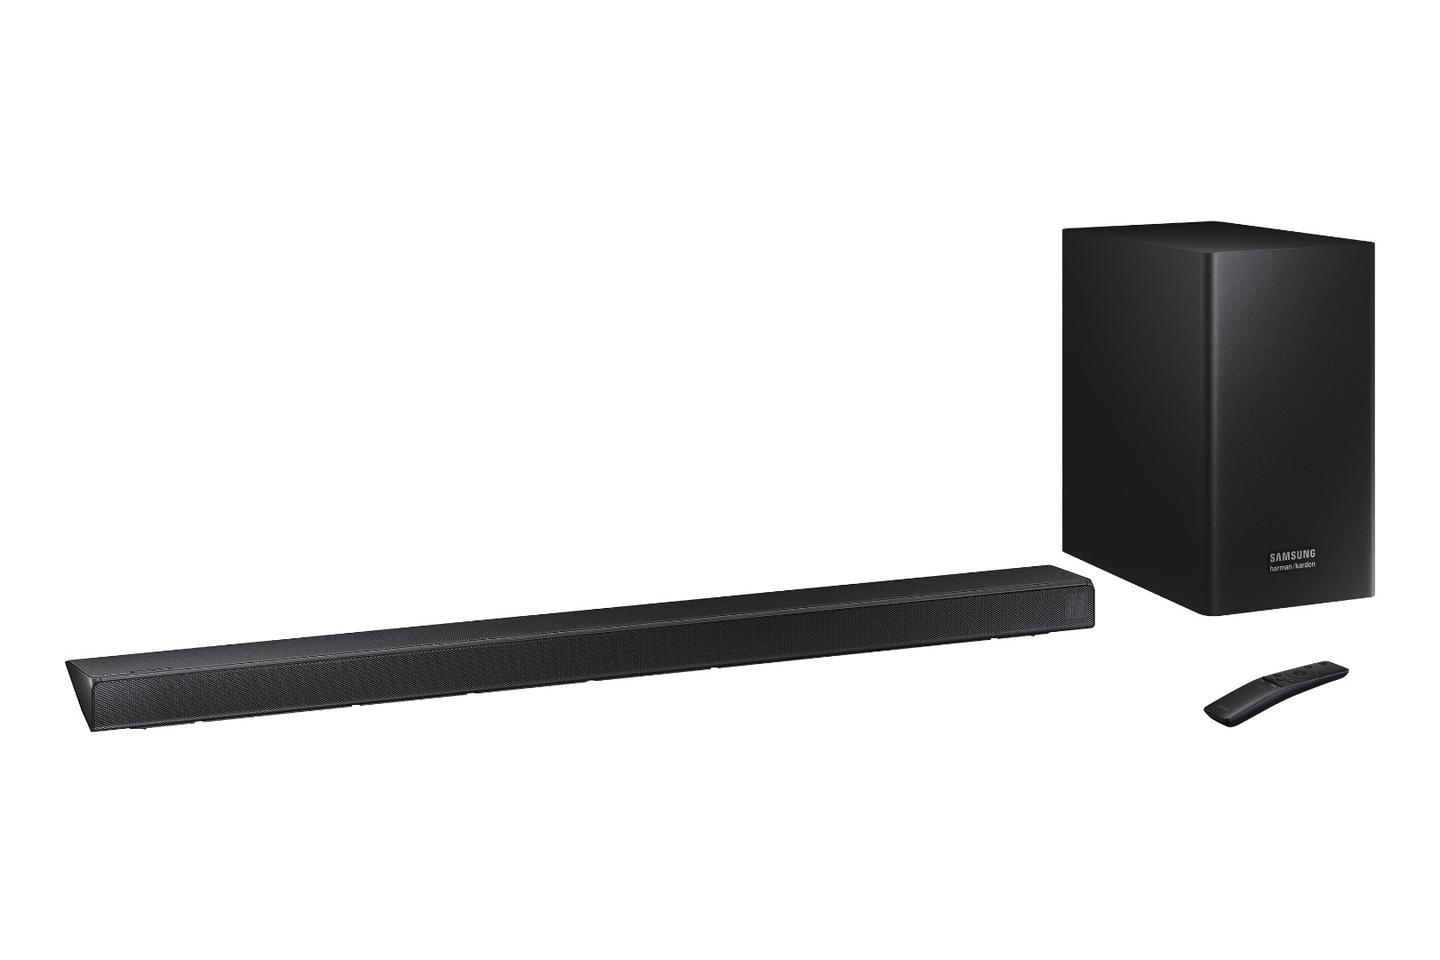 The Samsung Q Series soundbars are designed to work with the company's 2019 QLED TVs